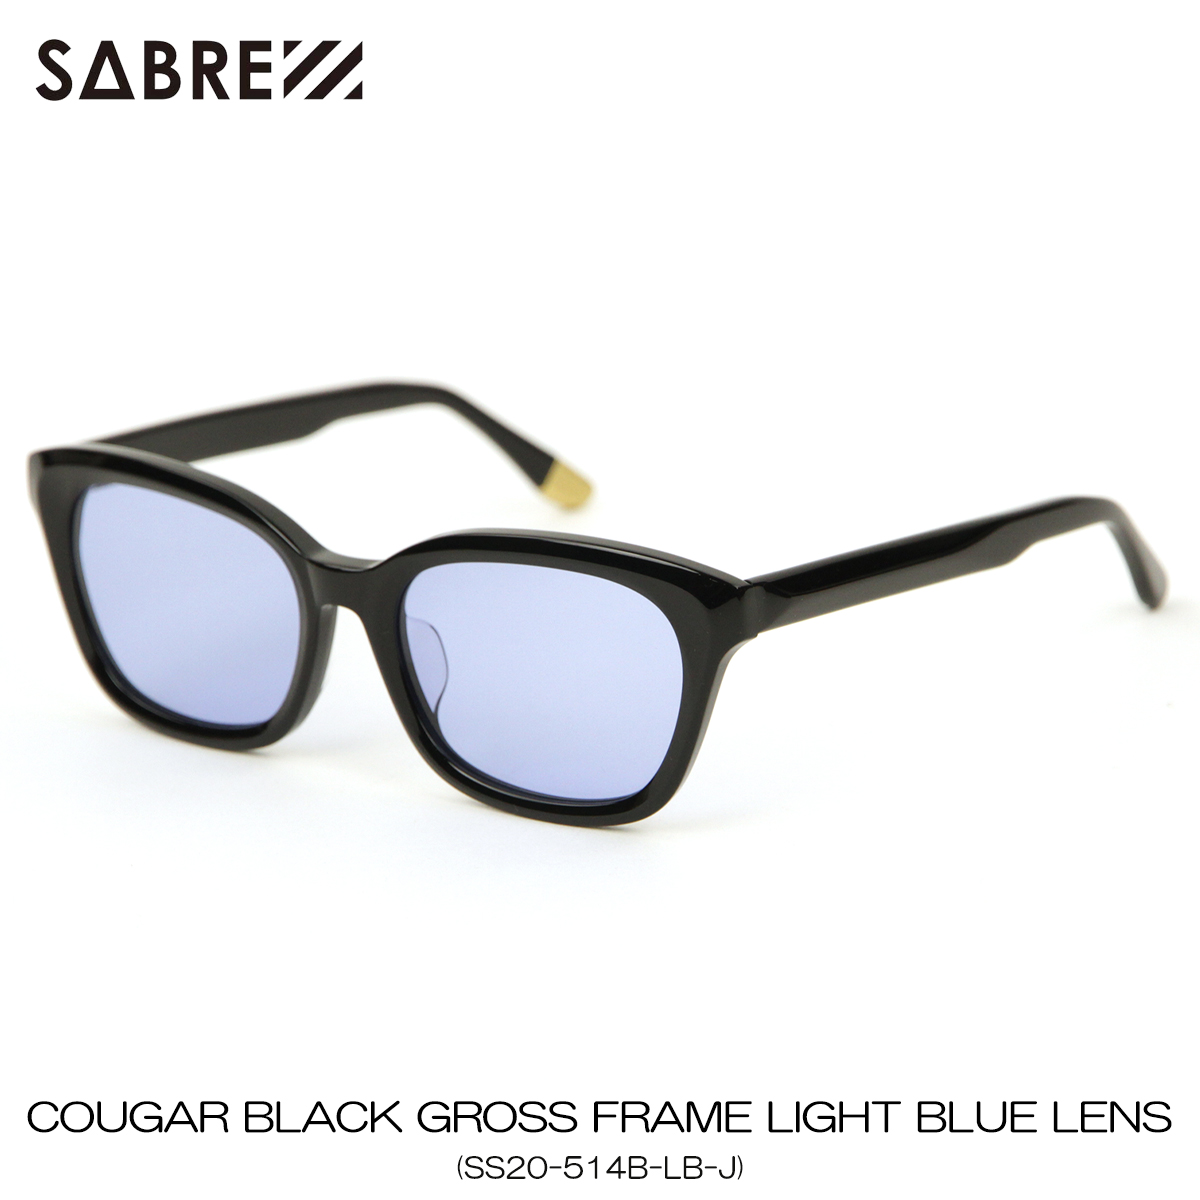 セイバー サングラス 正規販売店 SABRE サングラス COUGAR BLACK GROSS FRAME SUNGLASS LIGHT BLUE LENS SS20-514B-LB-J A55B B3C C3D D1E E13F